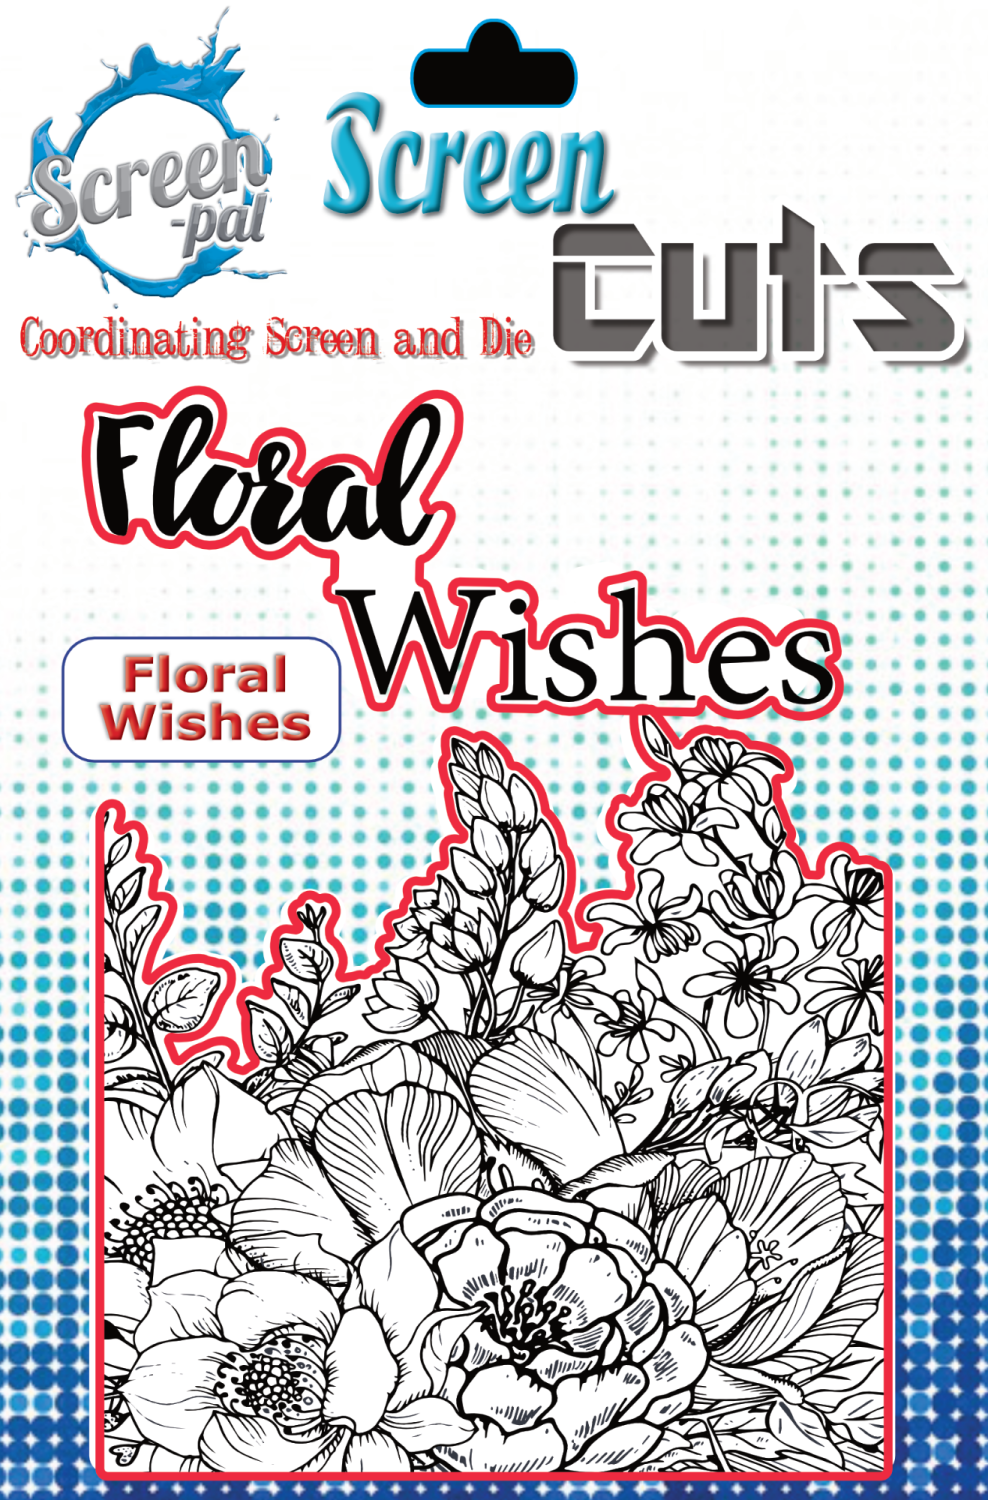 Screen pal Screen Cuts - Floral Wishes screen cuts